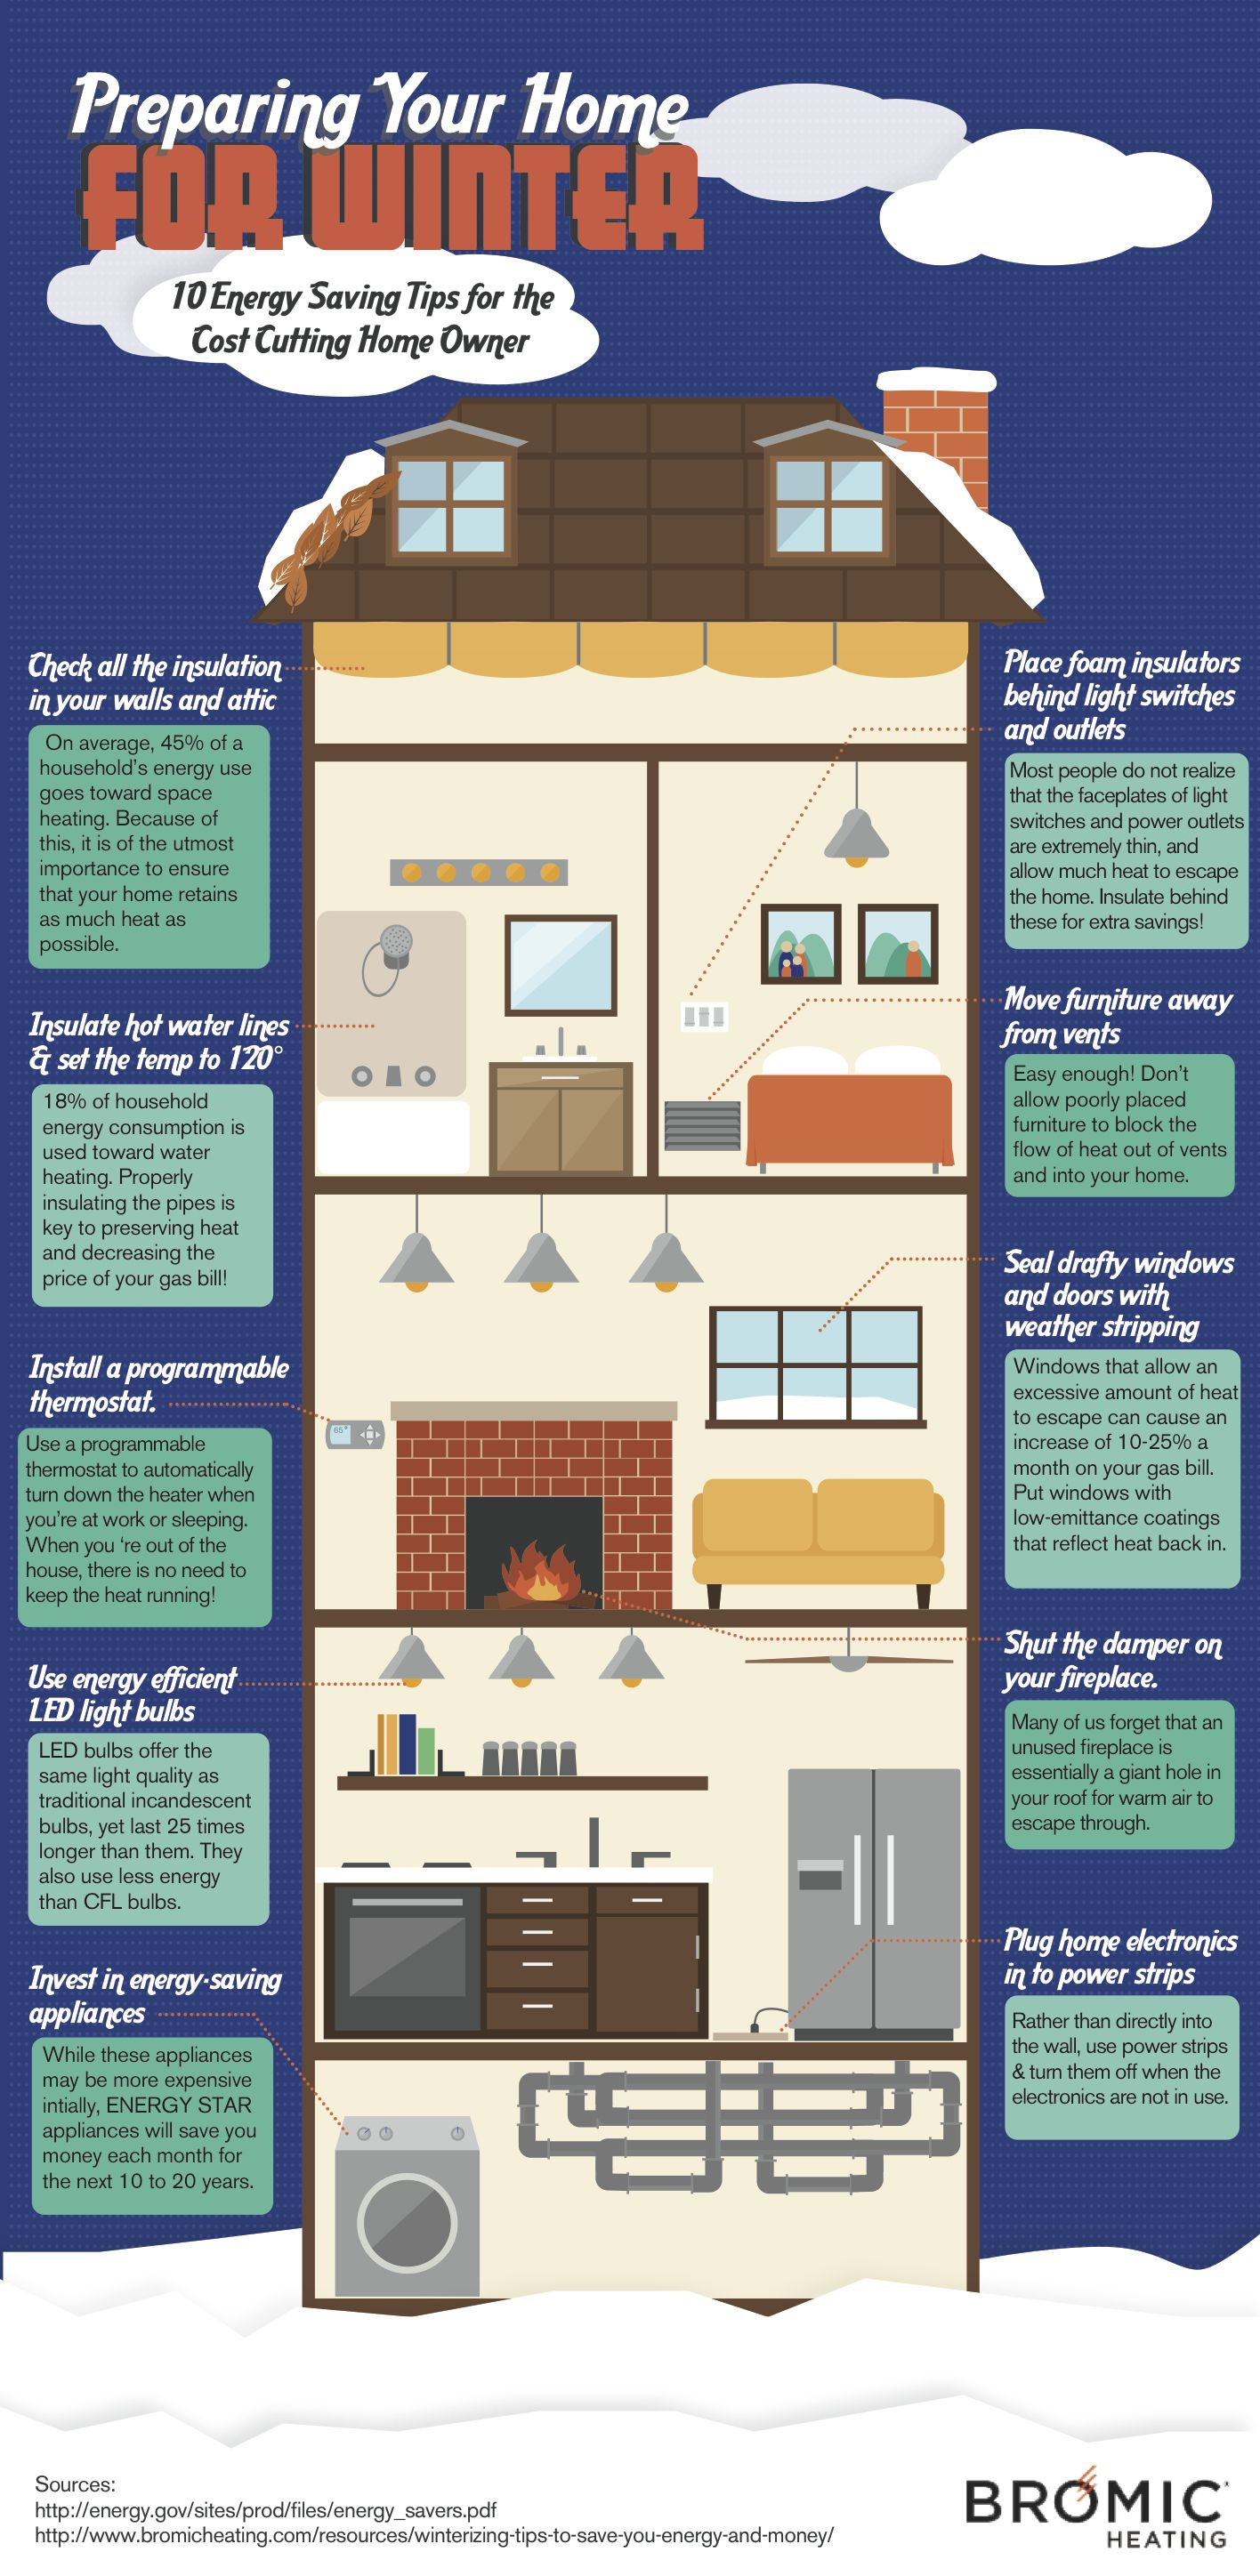 Use These 10 Energy Saving Tips To Stay Warm This Winter But Save All Year Round Winter House Energy Saving Tips Save Energy